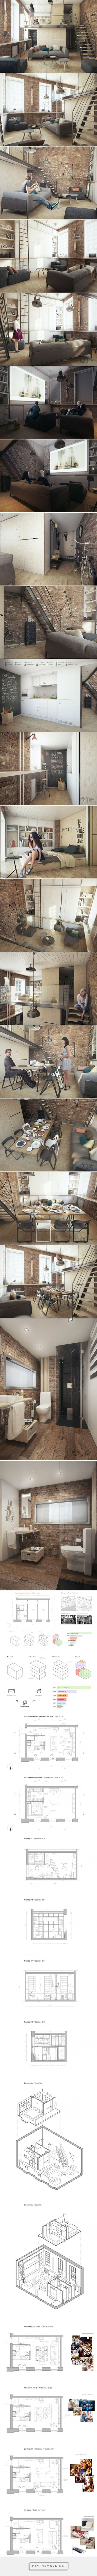 Amazing loft design with exposed brick | Industrial and Loft ...